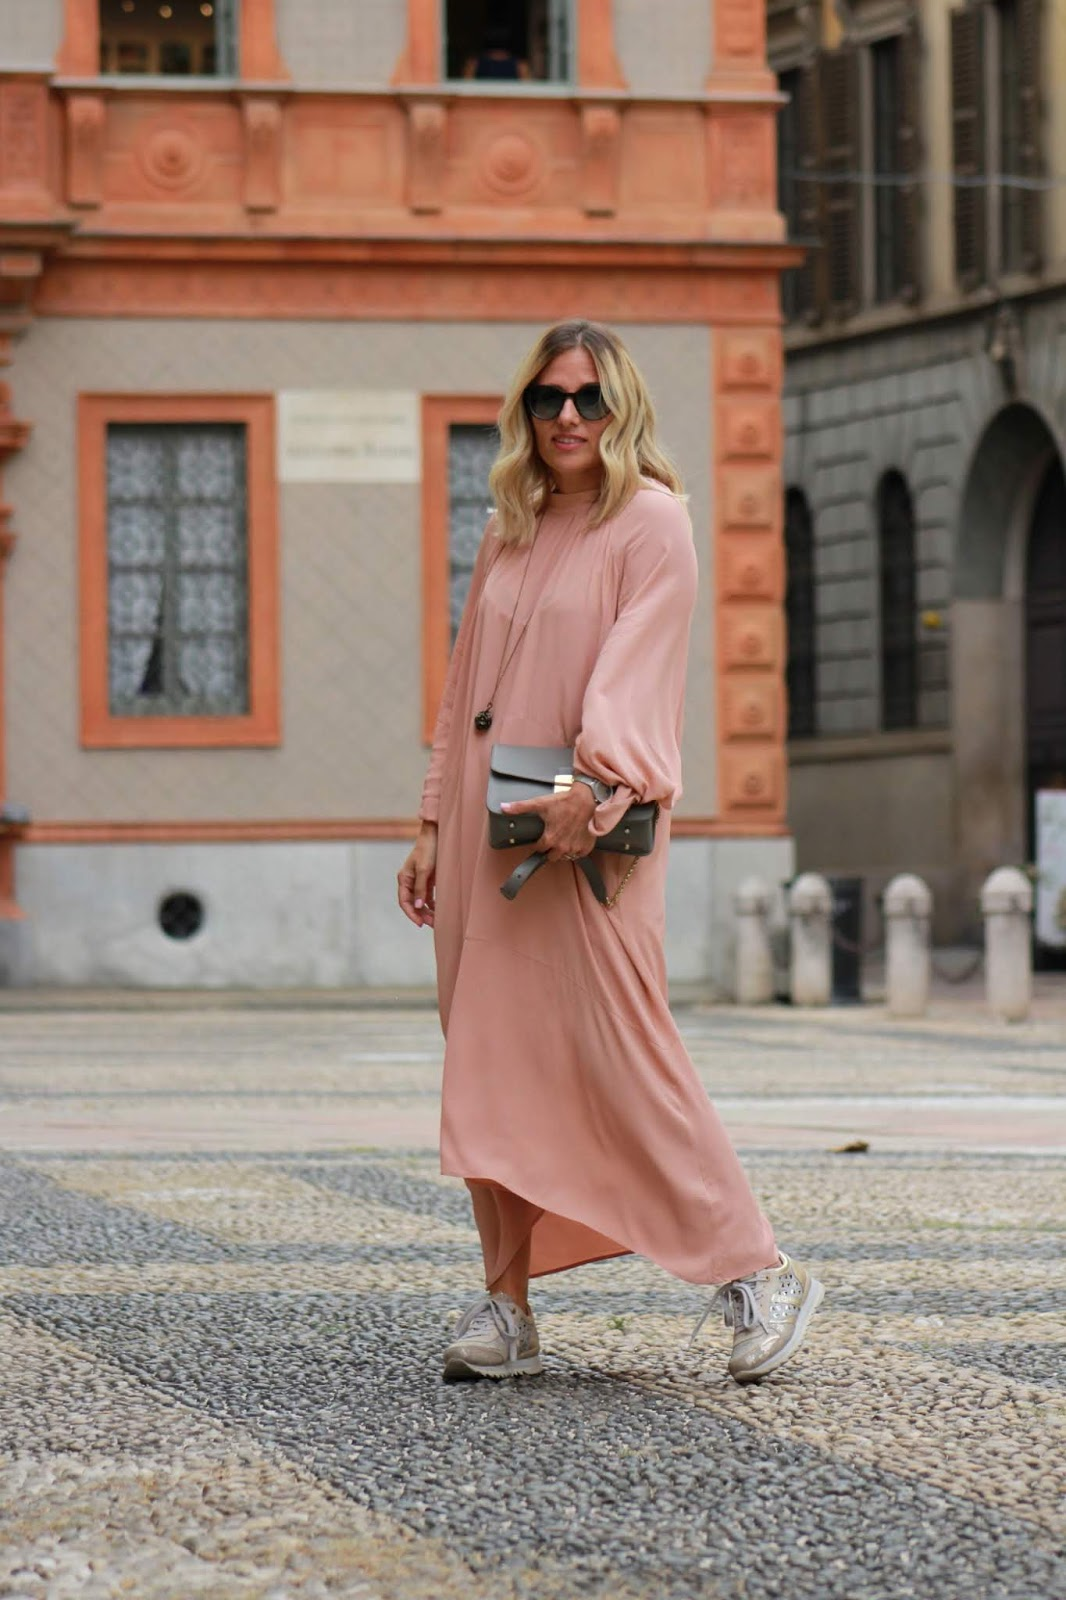 Eniwhere Fashion - MFW18 - Outfit Fashion Week